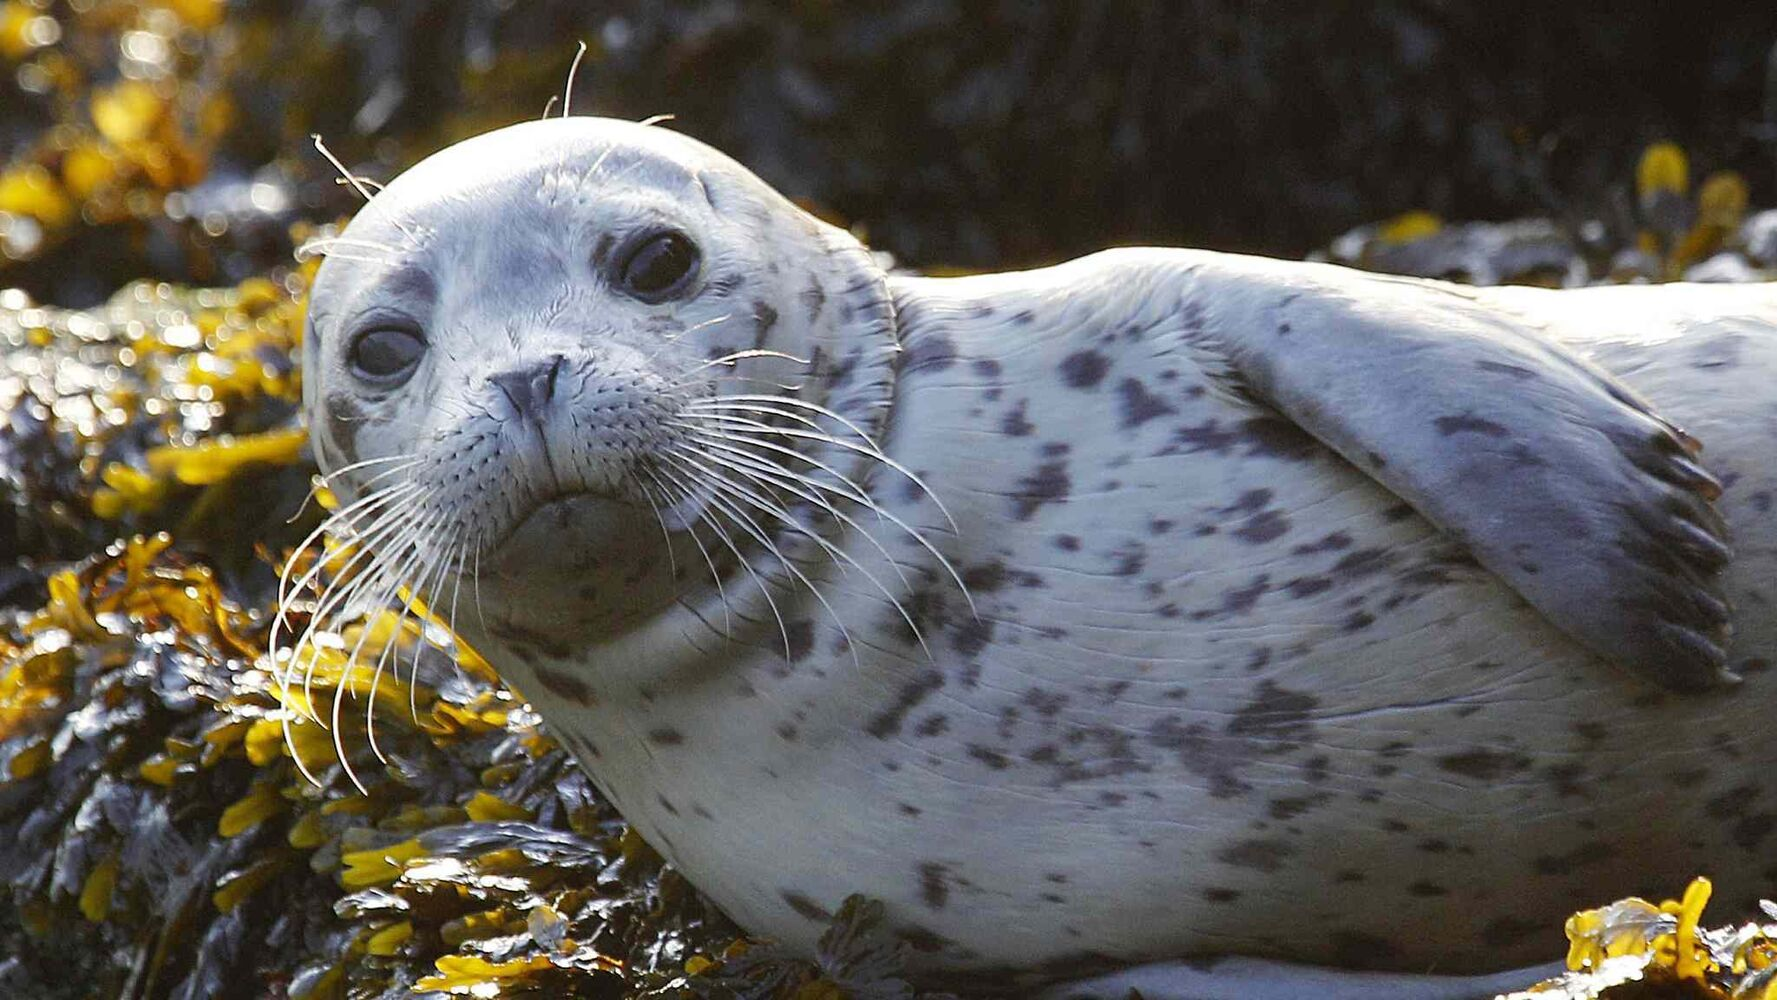 A harbor seal pup looks up at a visitor as he rests on seaweed-covered rocks after coming in on the high tide Wednesday morning, Oct. 12, 2011, in the West Seattle neighborhood of Seattle.